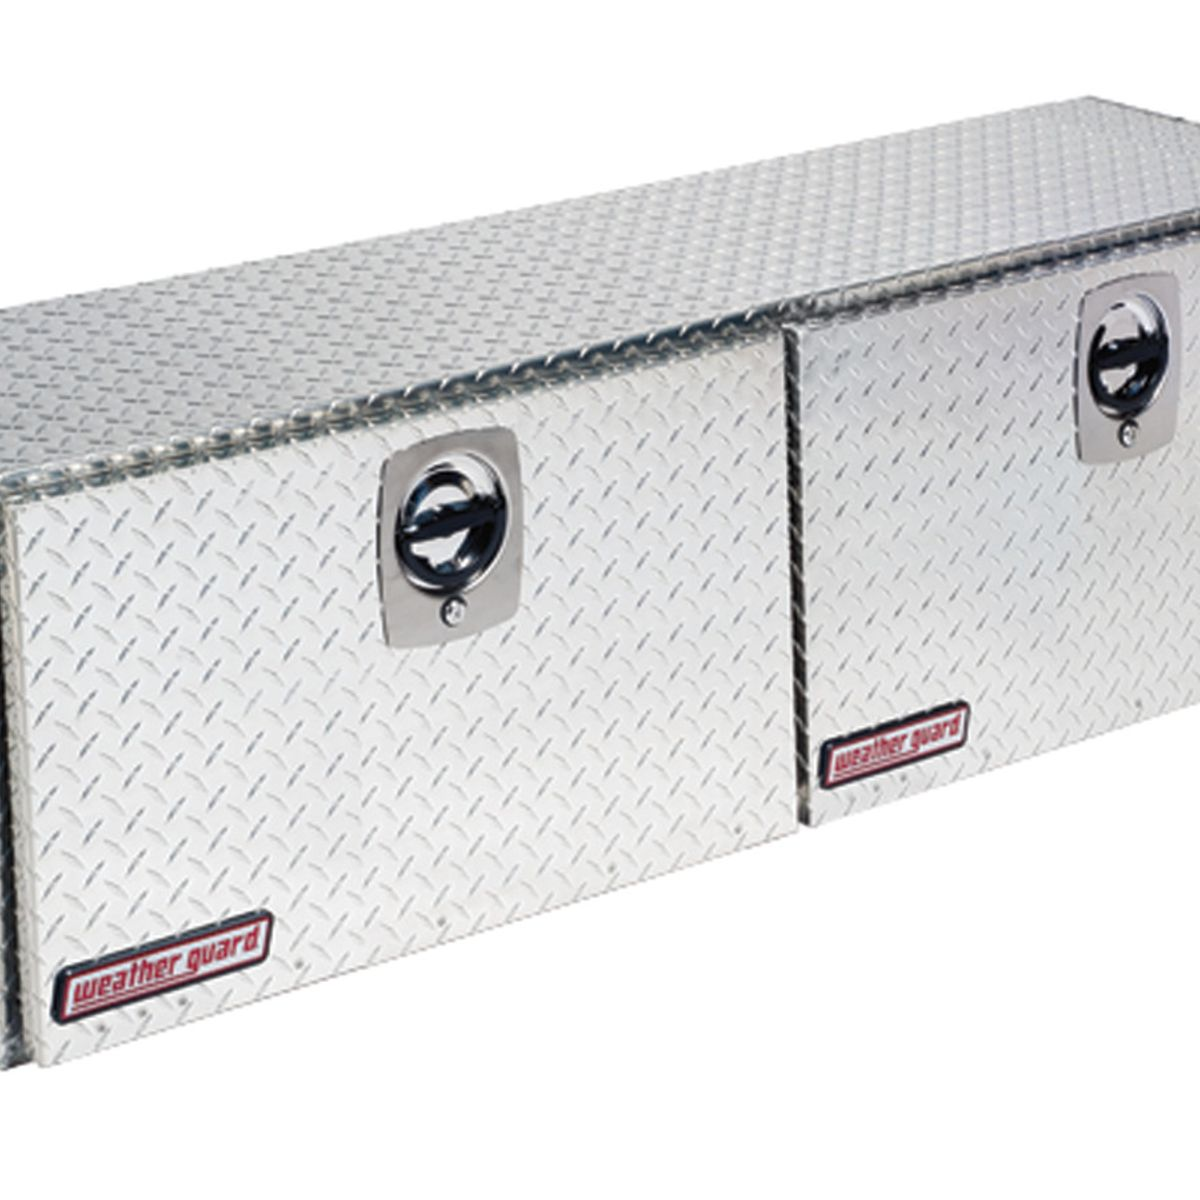 02 Box 365 02 Boxes Weather Guard Ca